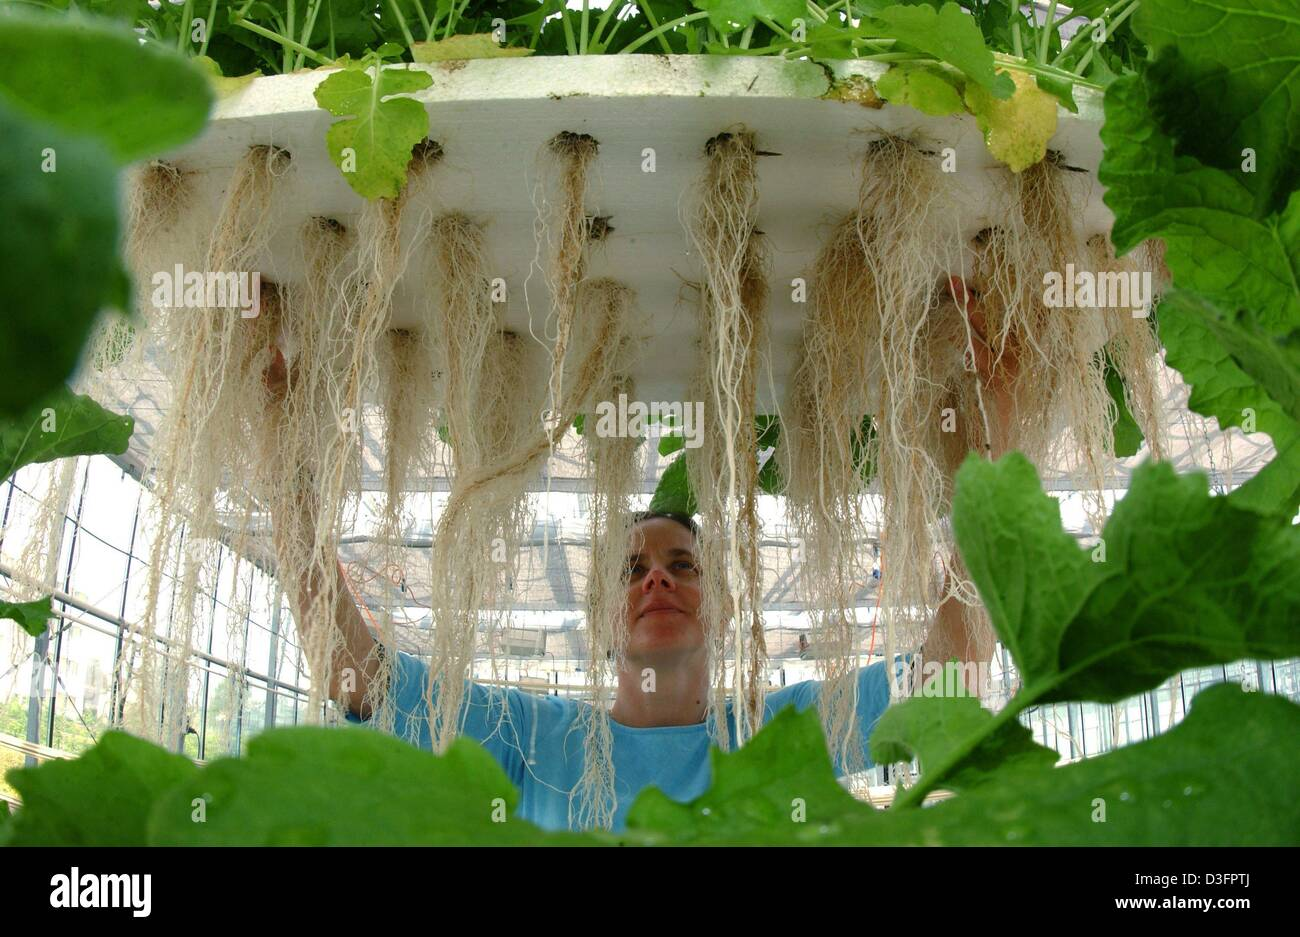 (dpa) - Monika Schreiner from the institute for vegetable and ornamental plants examines the roots of the 'Teltower - Stock Image